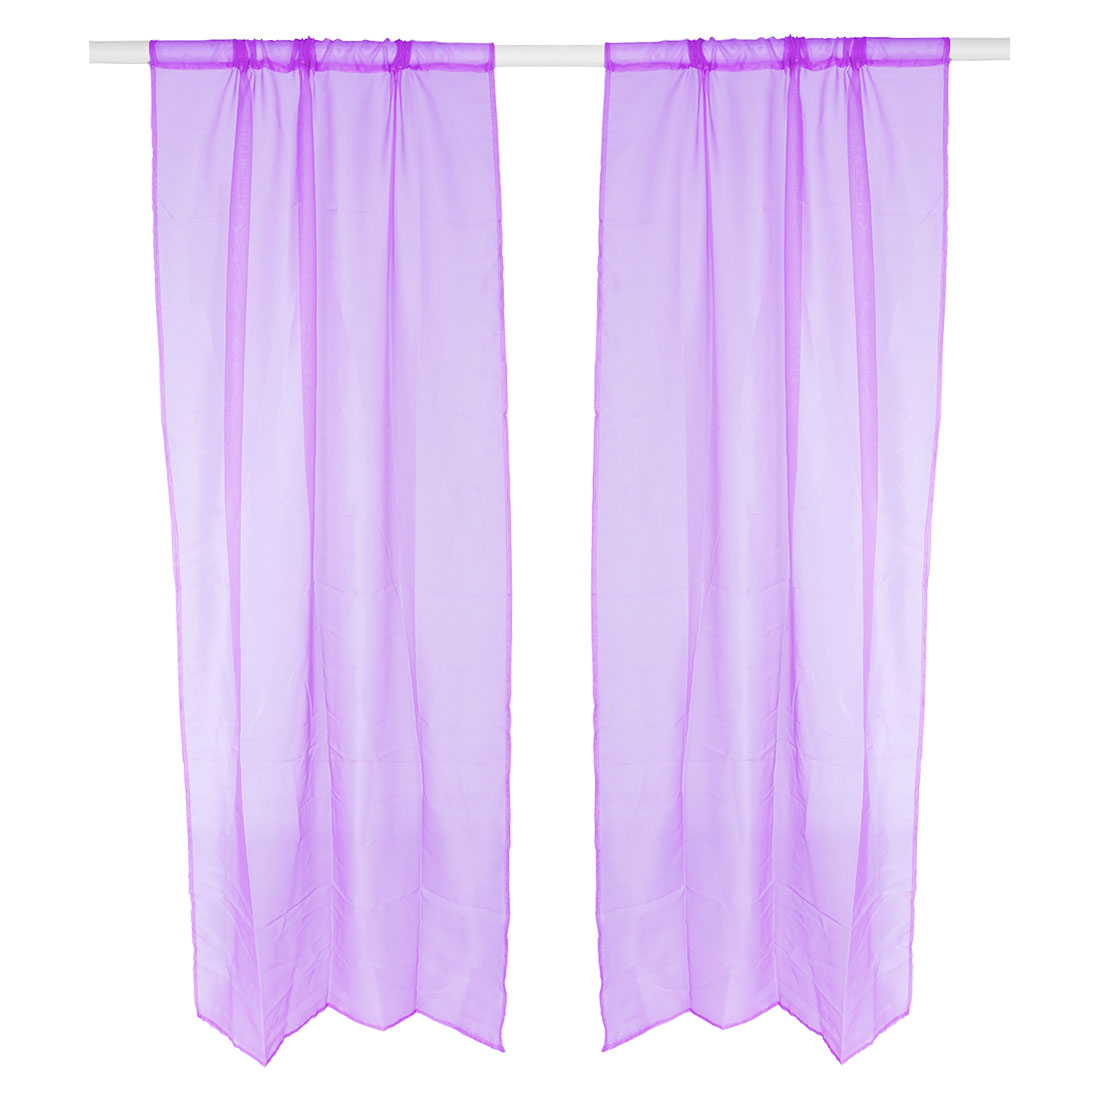 Home Polyester Decorative Voile Screen Window Sheer Curtain Purple 100 x 200cm